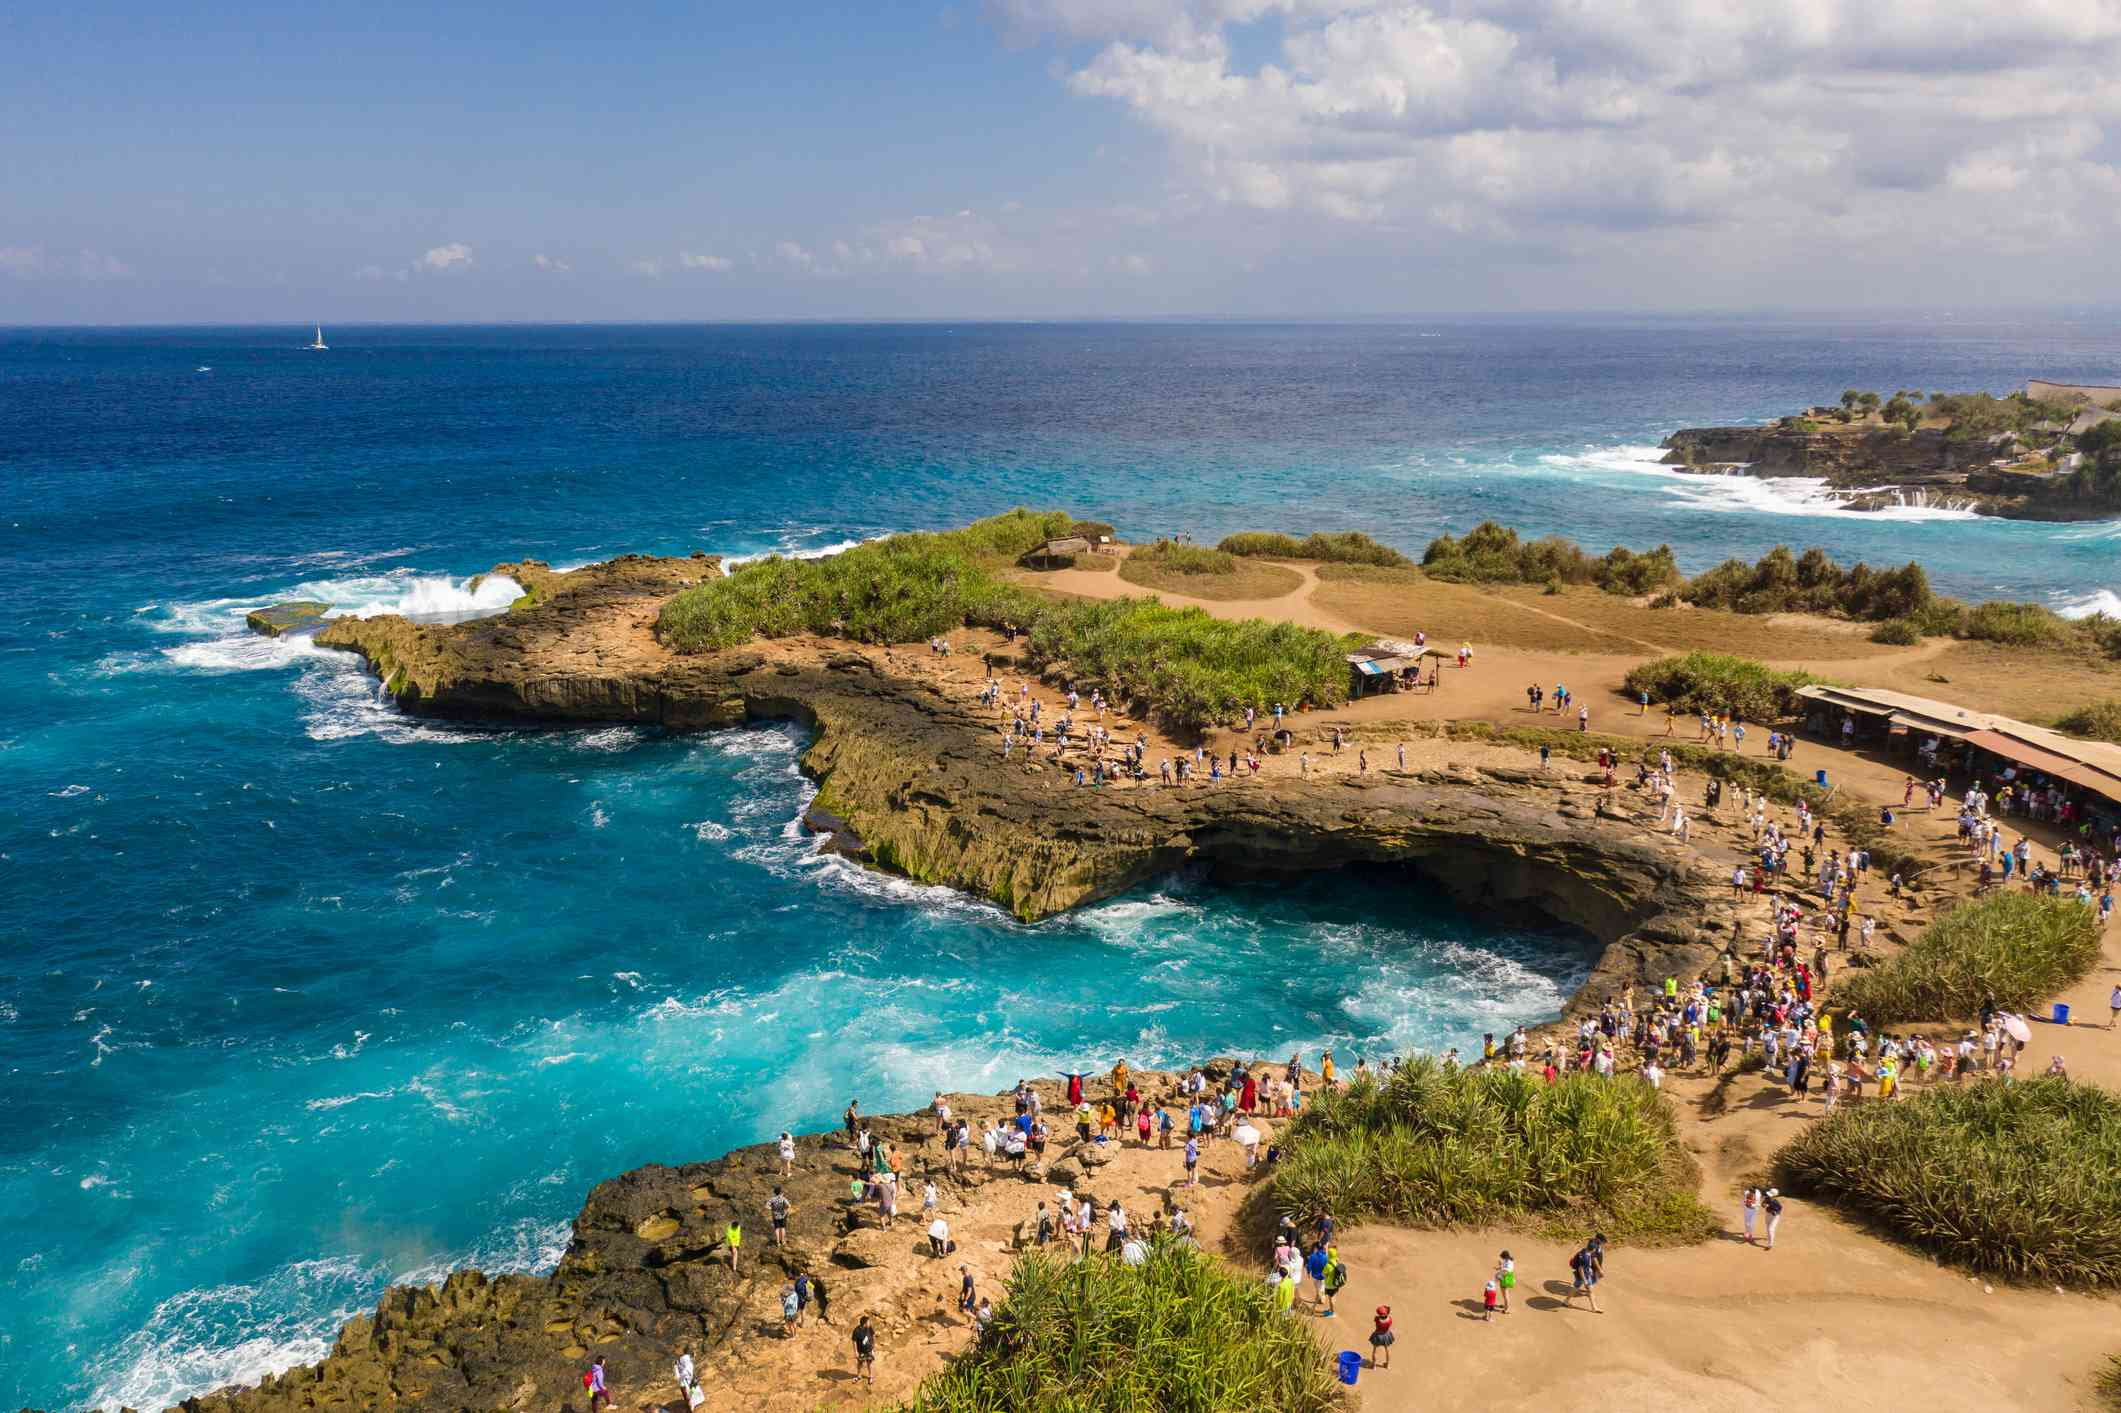 Aerial view of the famous Devil's tear in the Nusa Lembongan island in Bali, Indonesia.